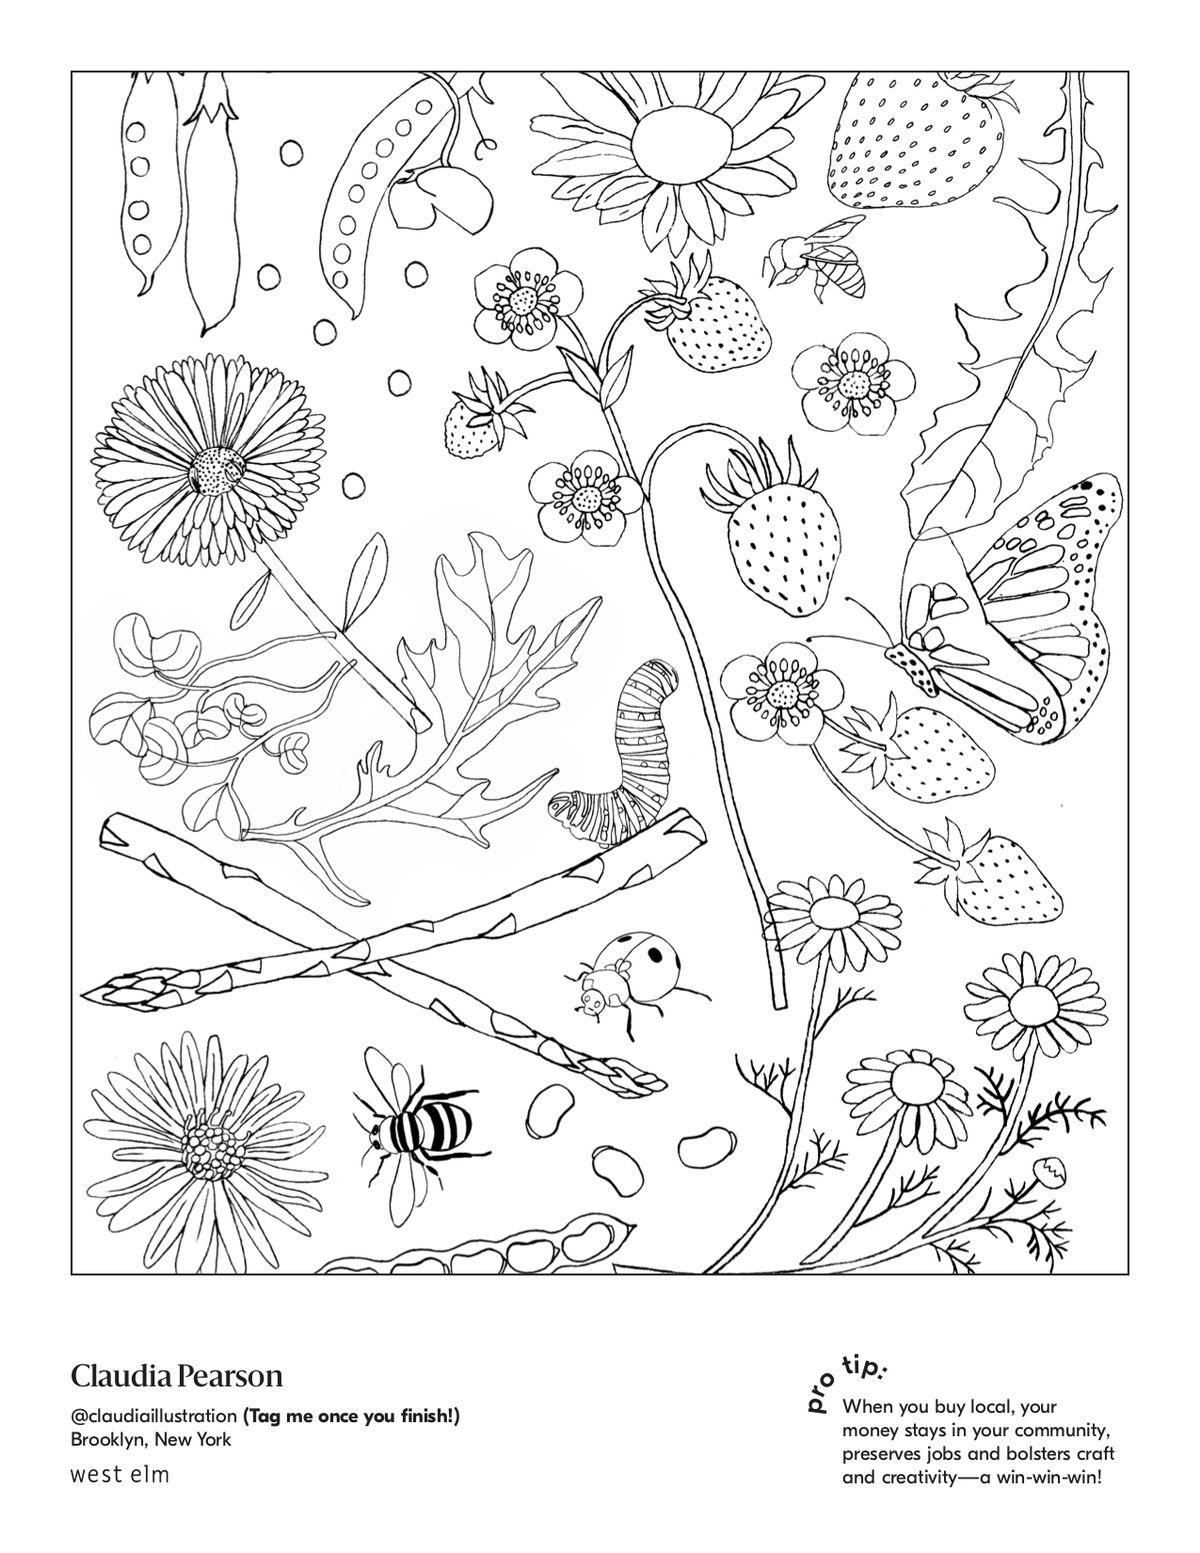 Line drawing of flowers, butterflies, bugs, and bees.